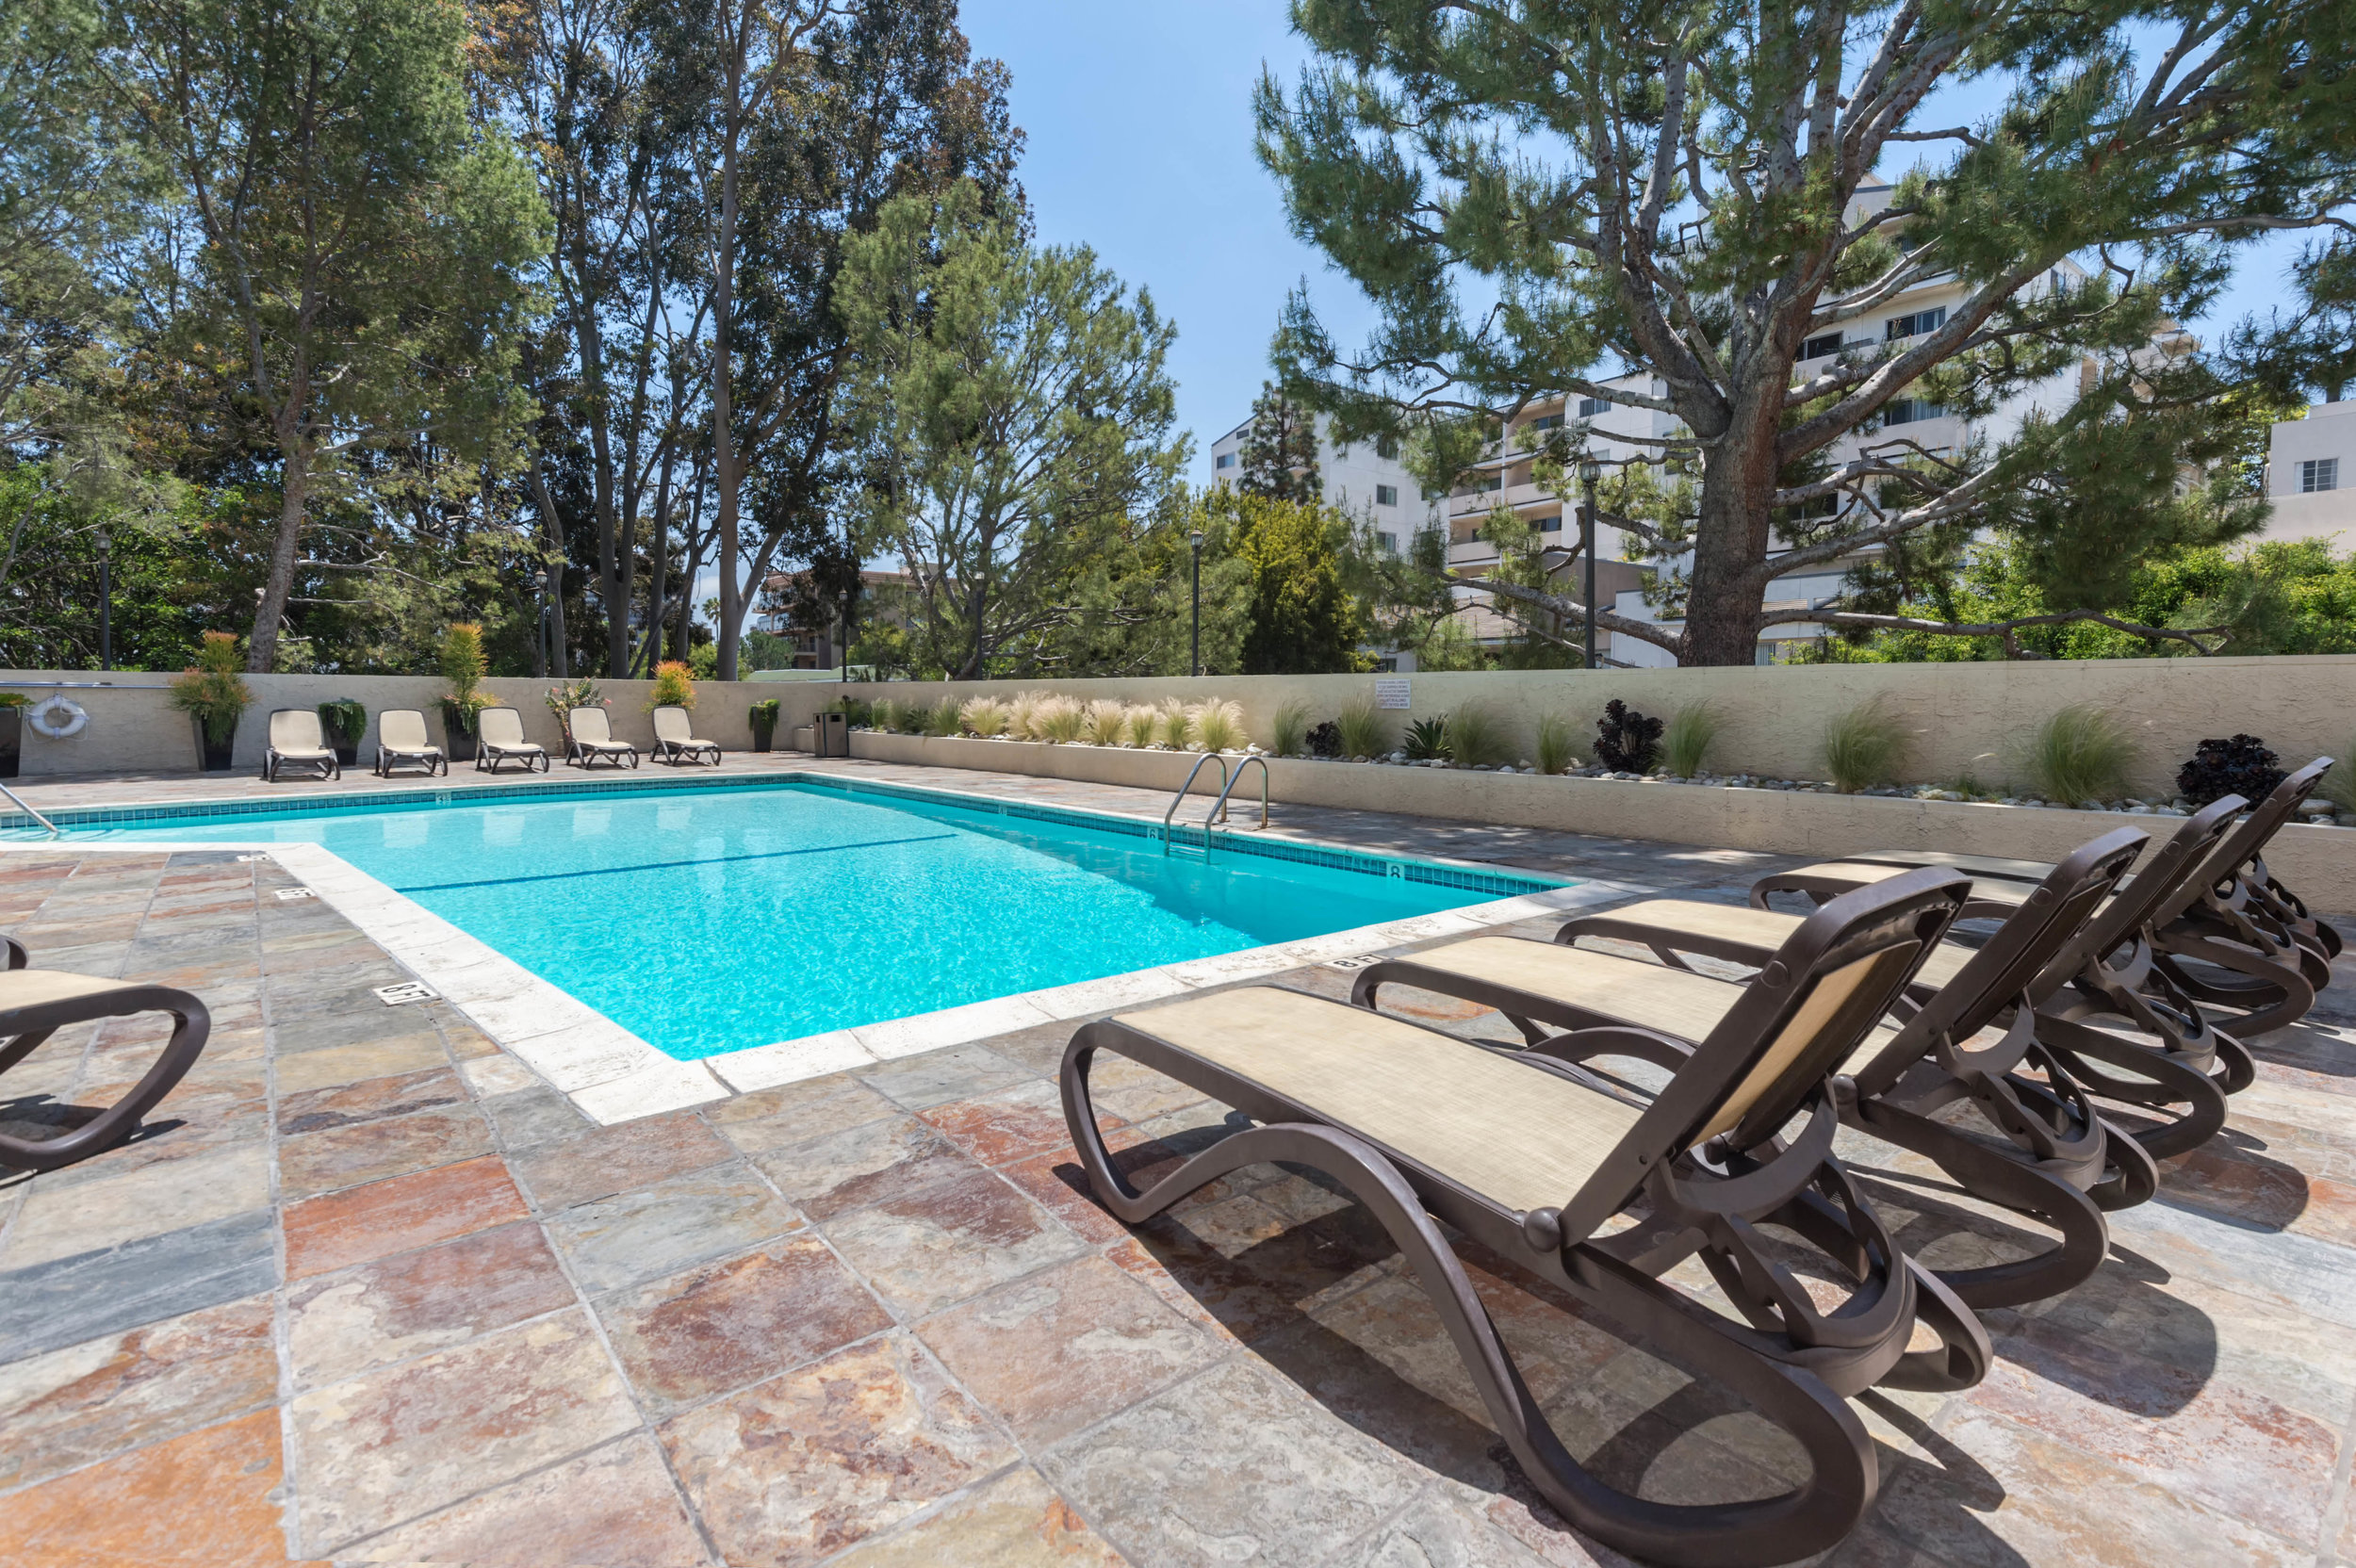 011 Pool 10982 Roebling Avenue #342 For Sale Lease The Malibu Life Team Luxury Real Estate.jpg